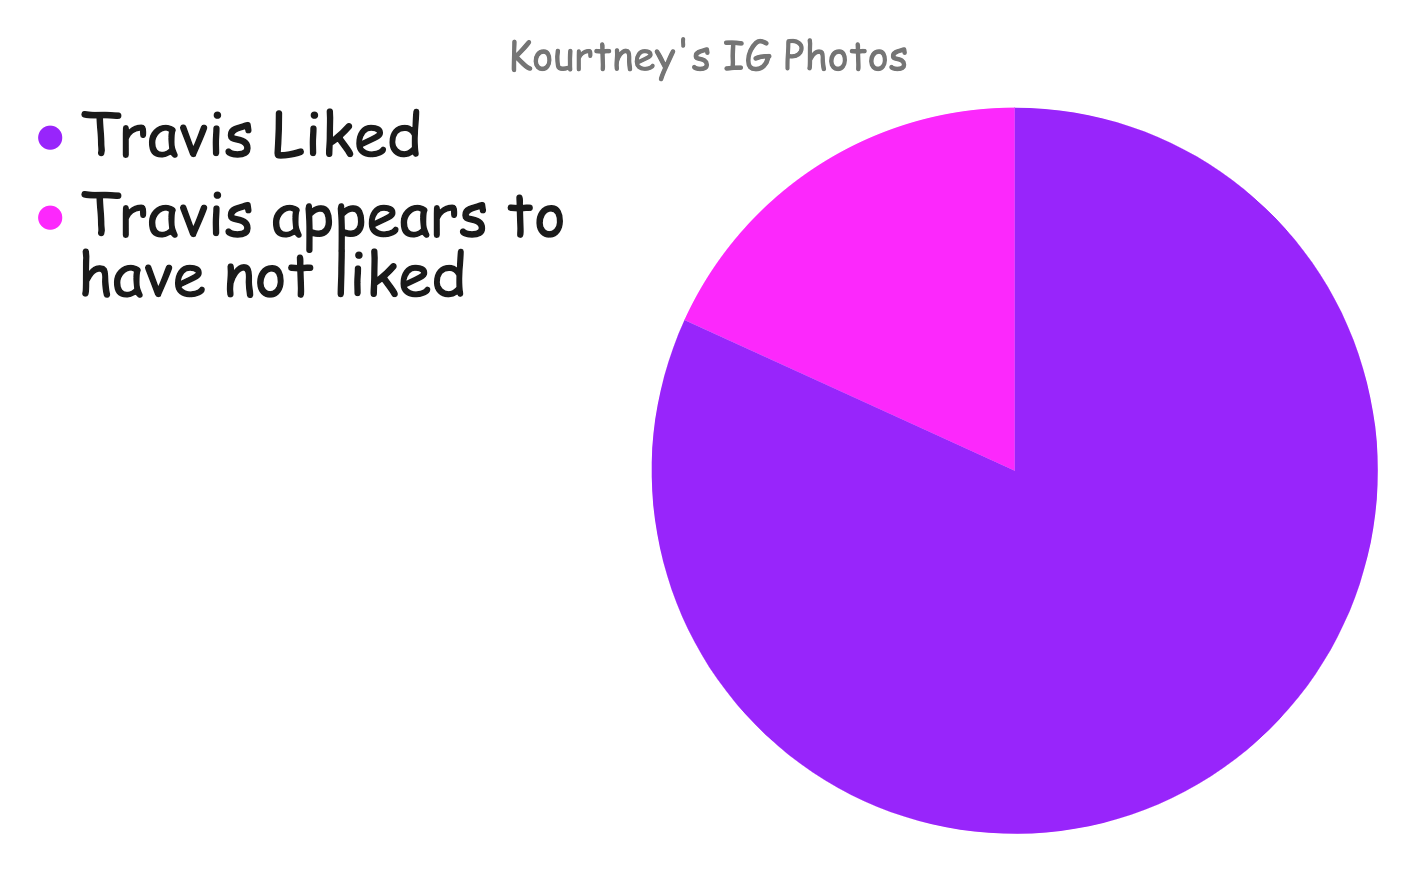 A pie chart showing how many pictures Travis liked